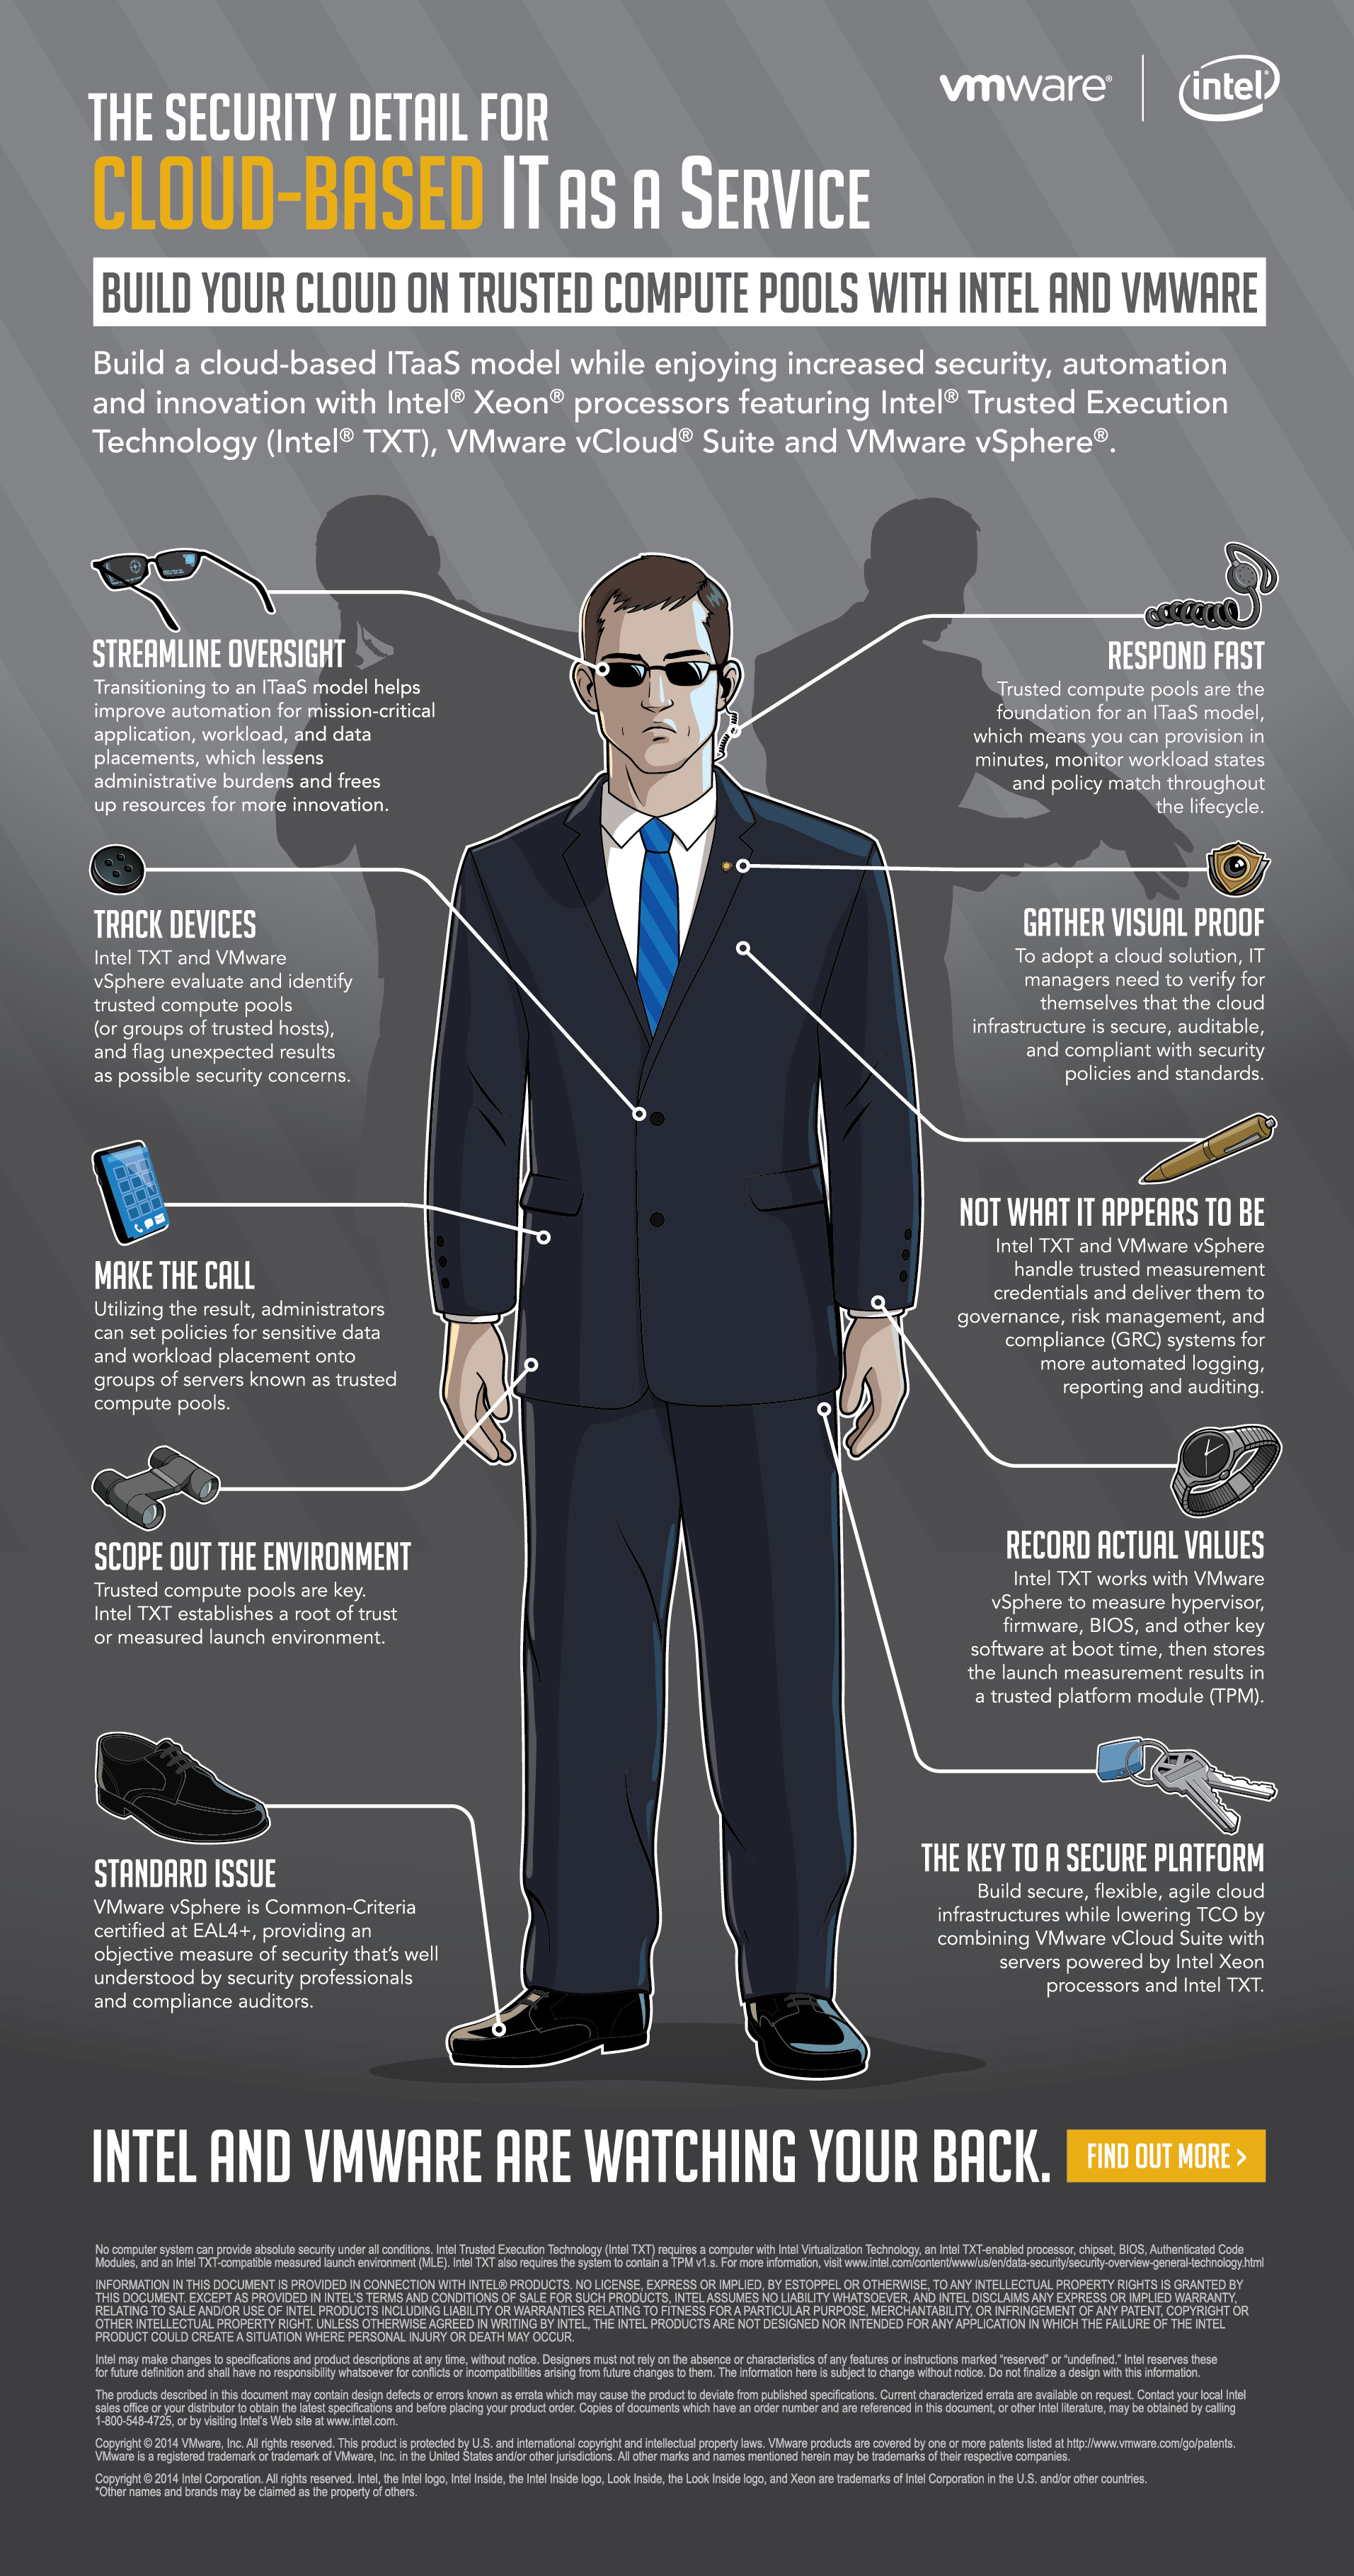 Security_Infographic_Outlined.jpg